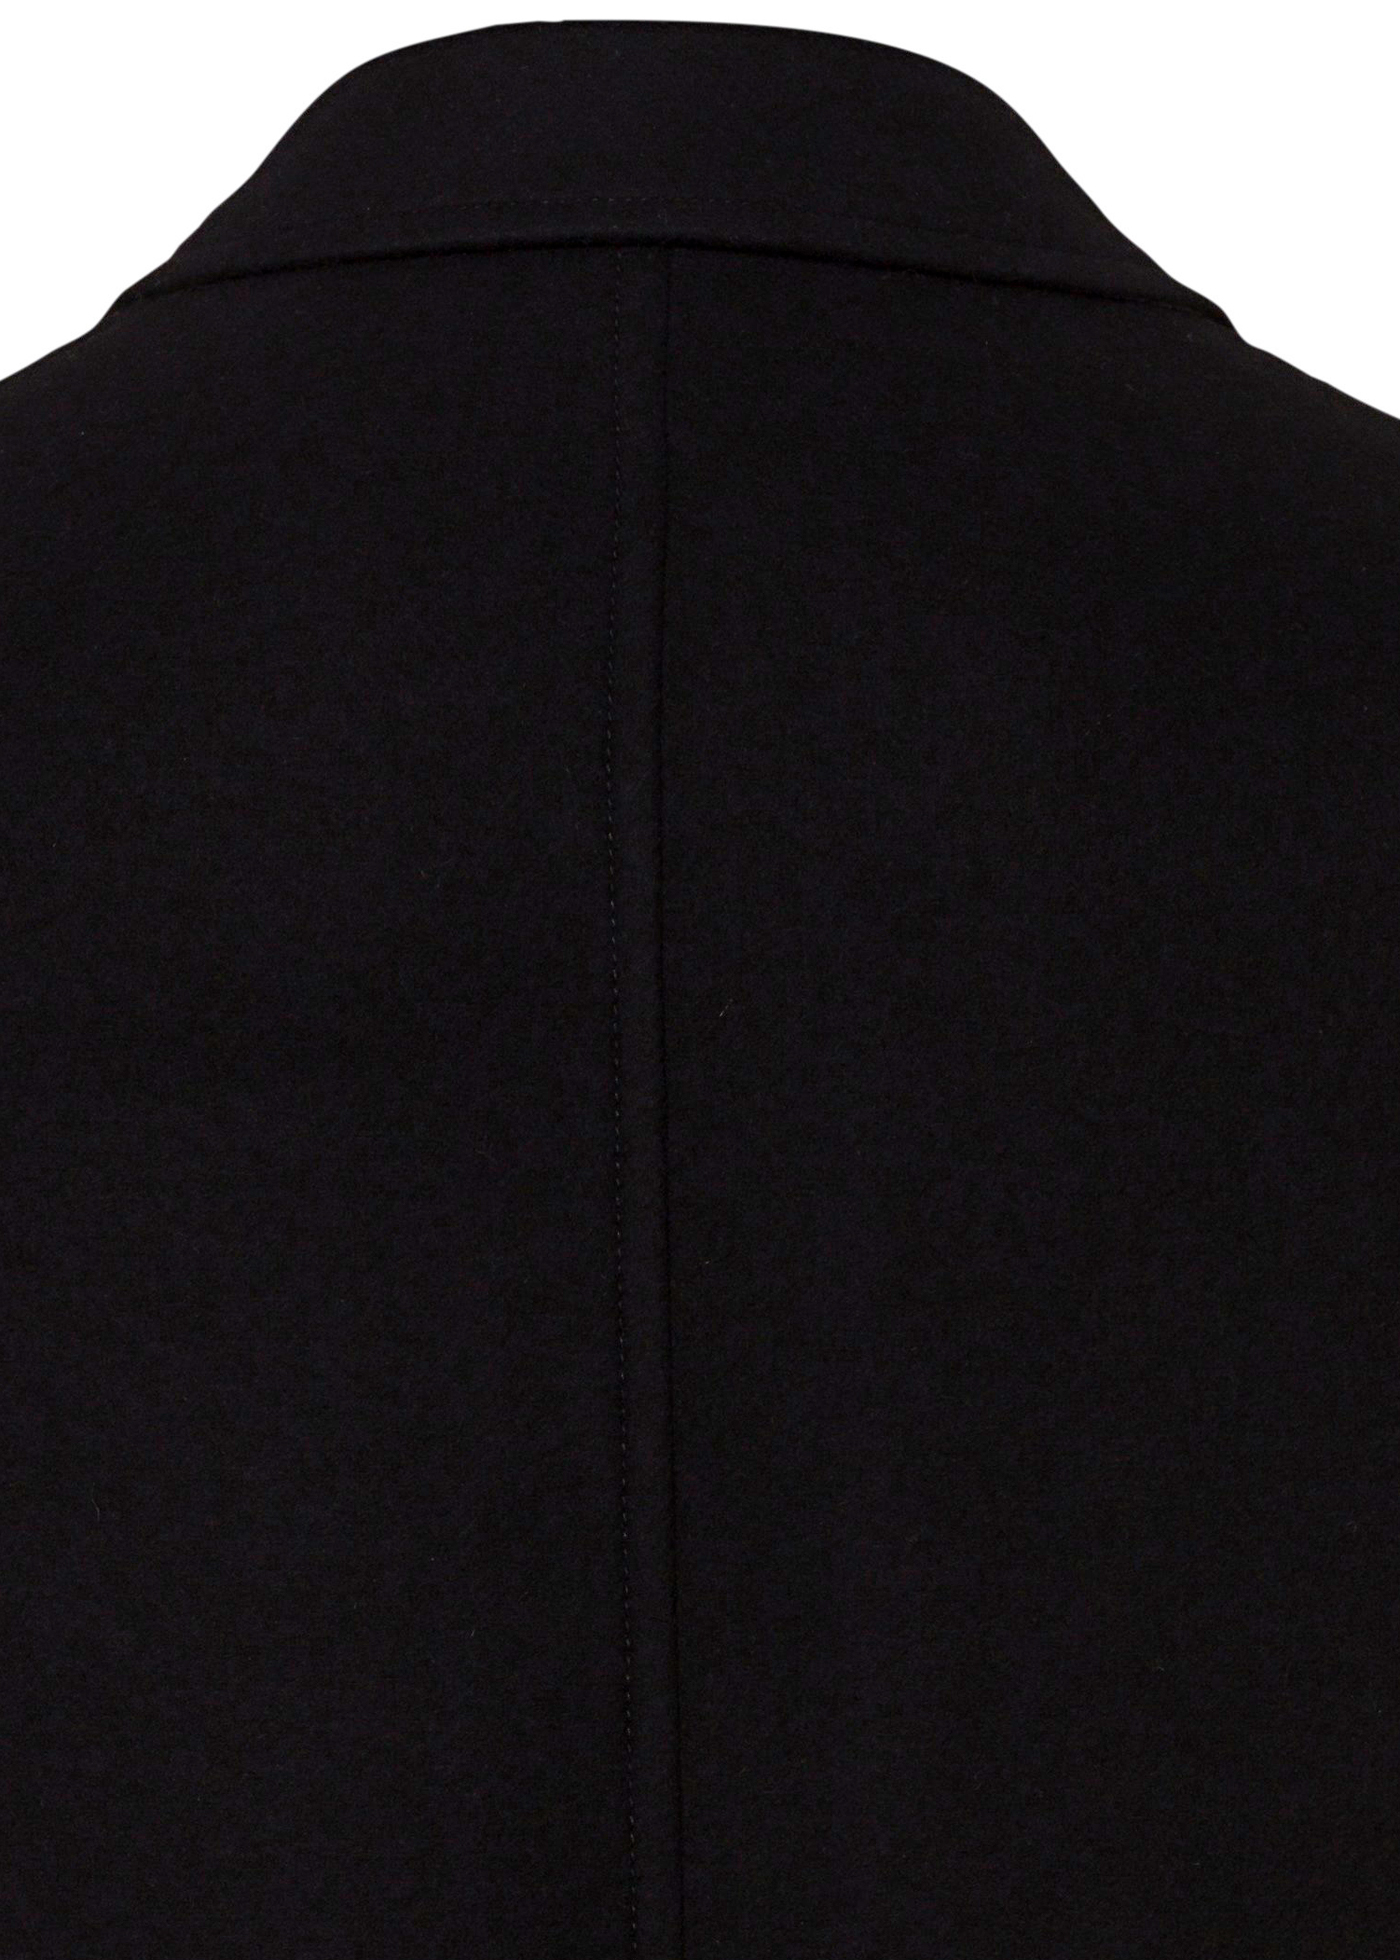 TWO BUTTONS COAT image number 3